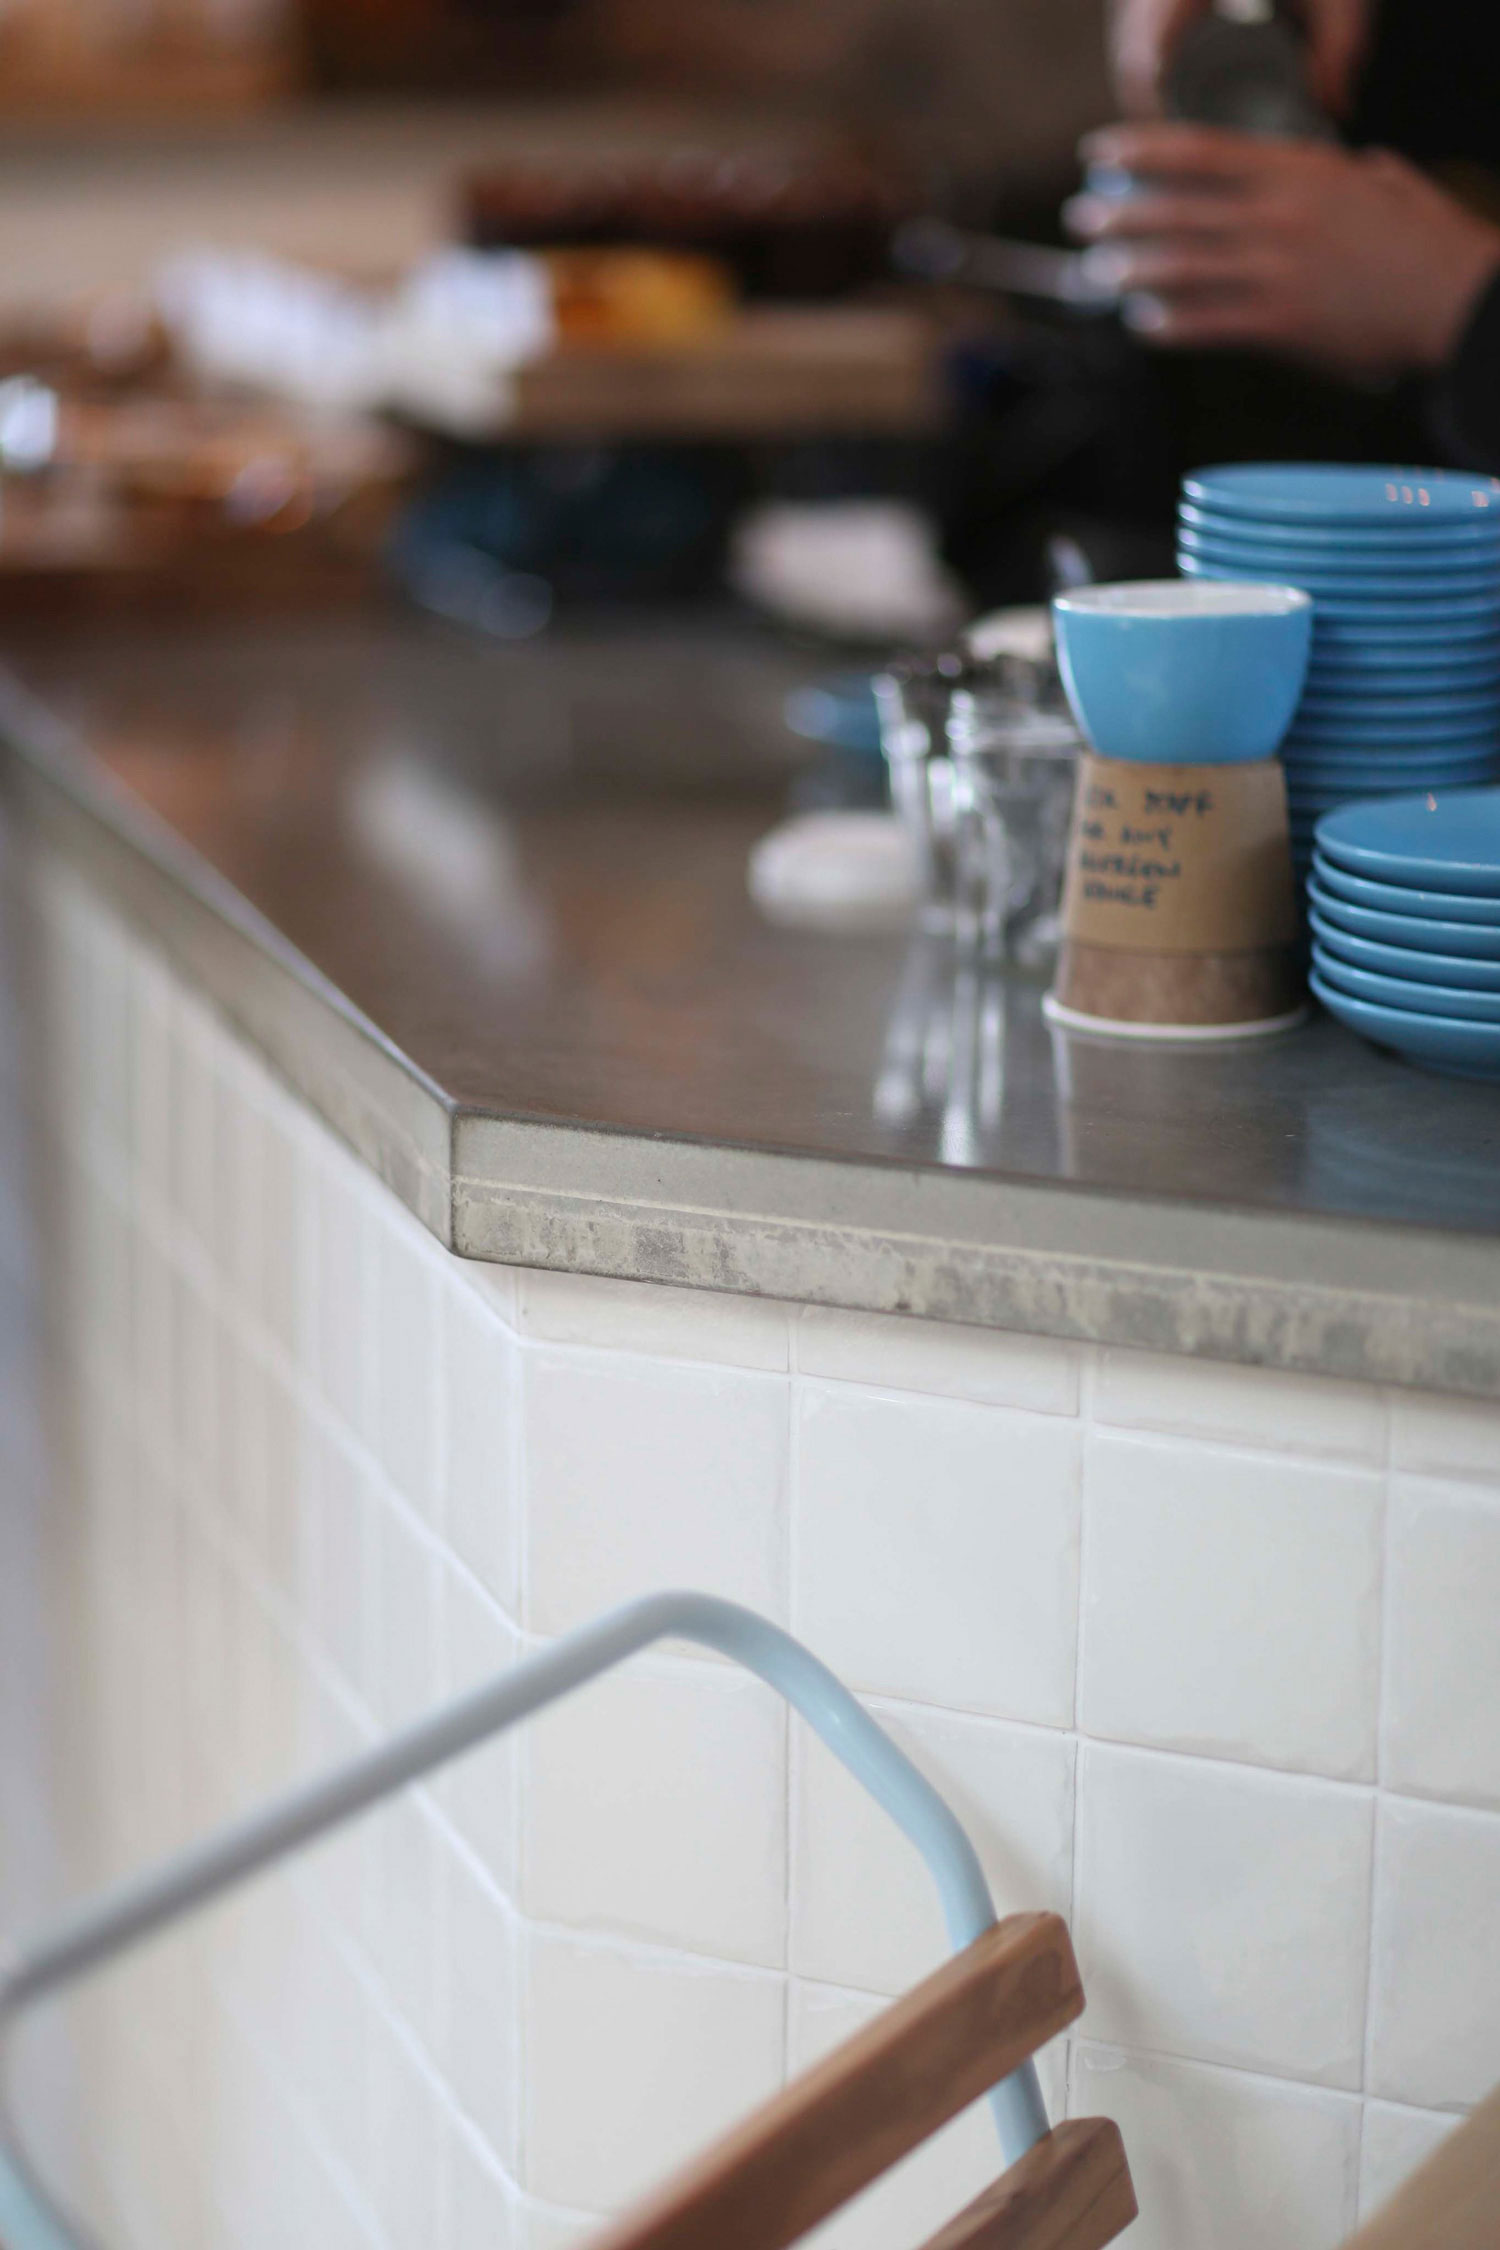 Cast and polished concrete worktops, Little Victories, Tinney and Co